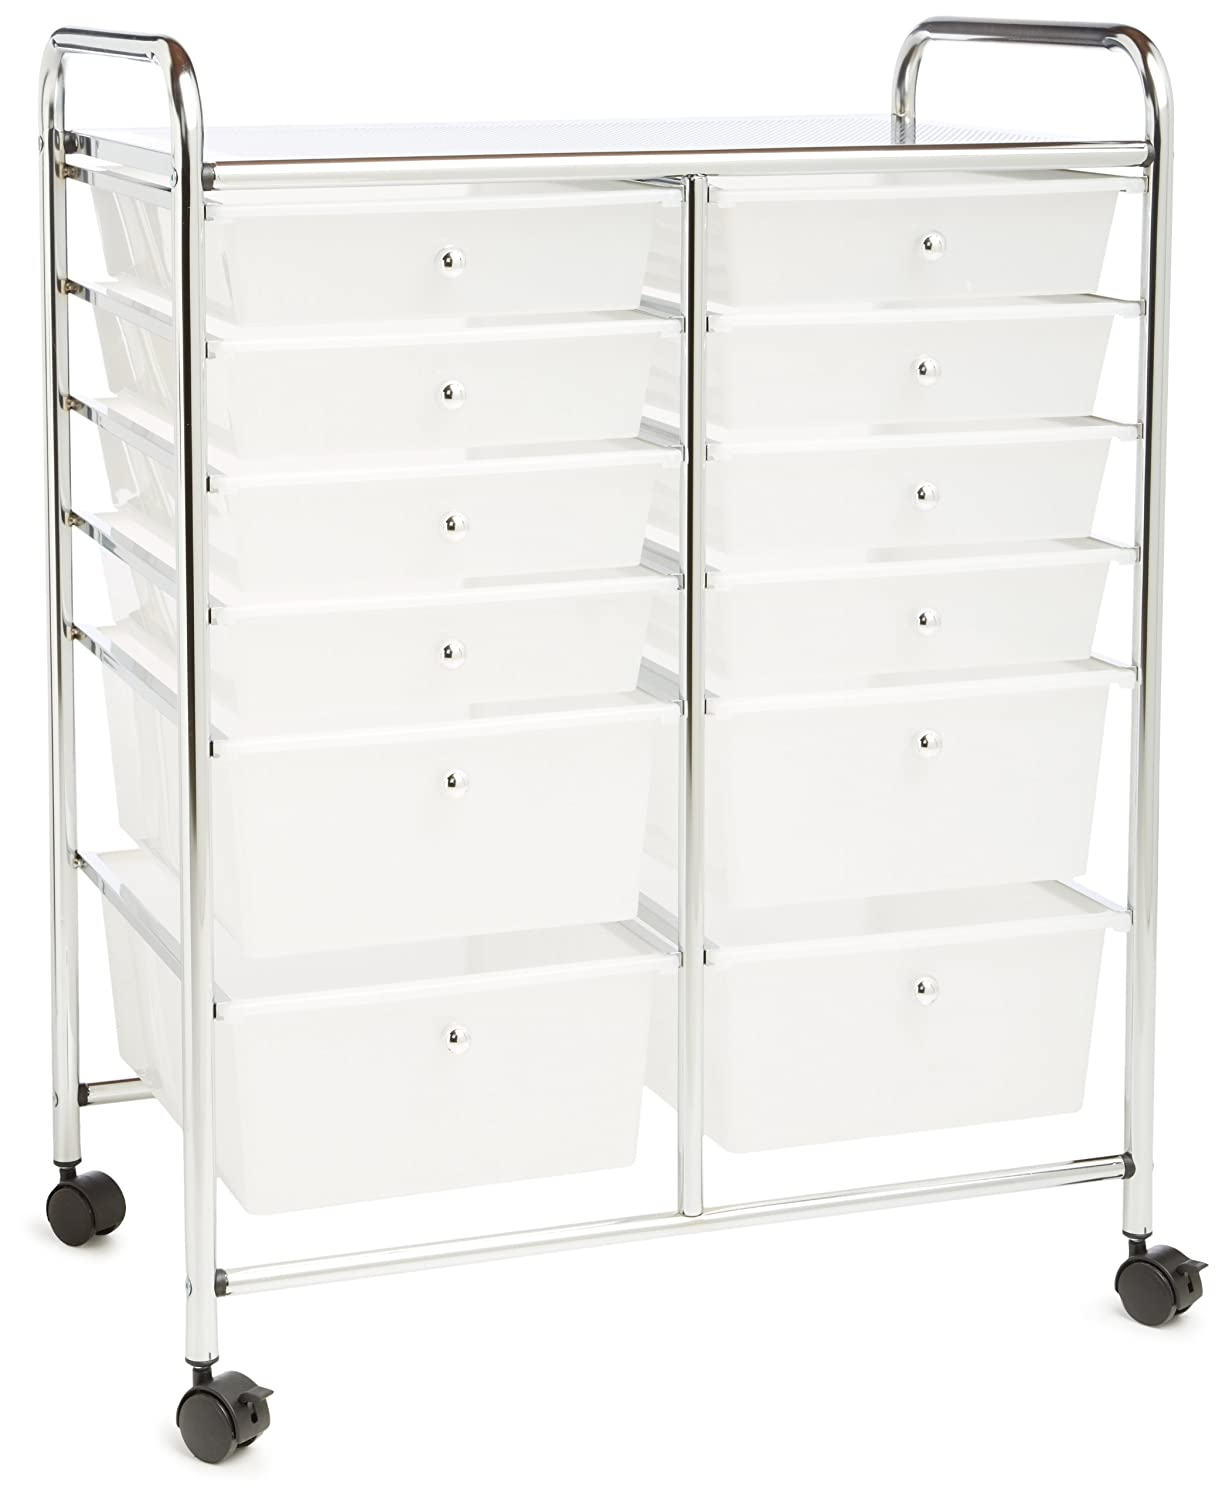 Rolling craft cart with drawers - Amazon Com Honey Can Do Crt 01683 12 Drawer Chrome Studio Organizer Cart Home Kitchen